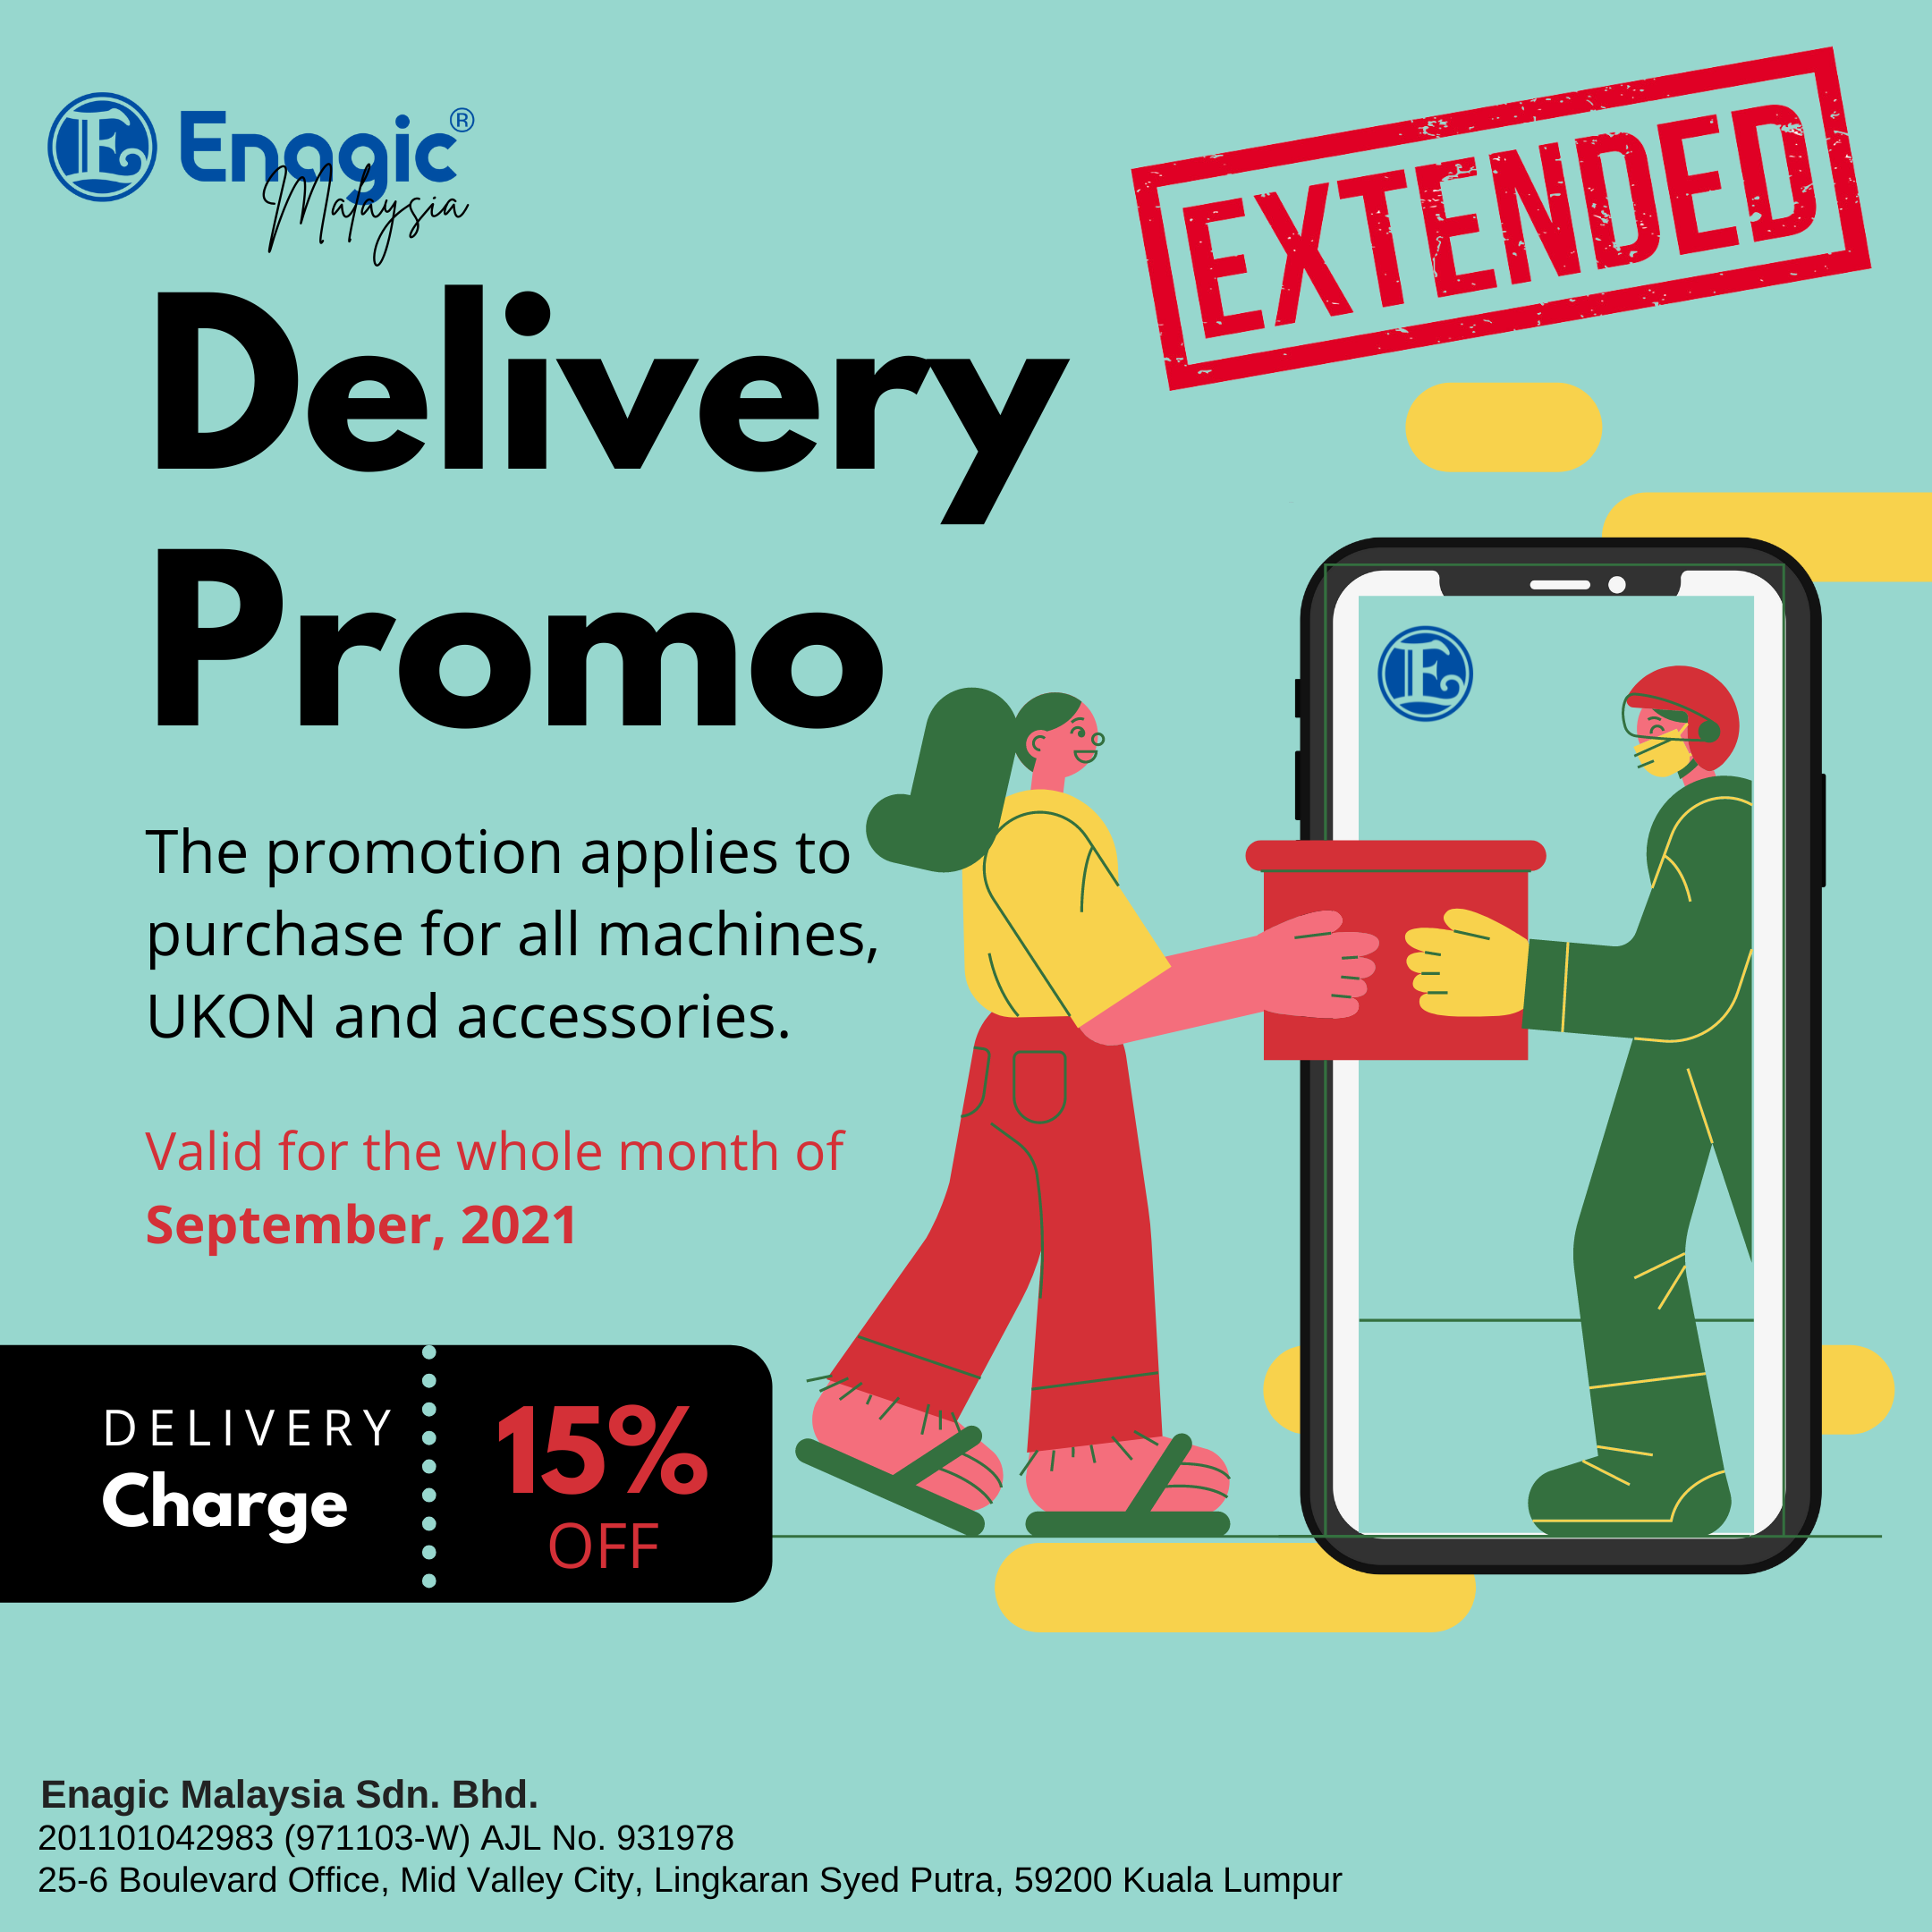 PROMO | 15% Off Delivery Charge (EXTENDED)